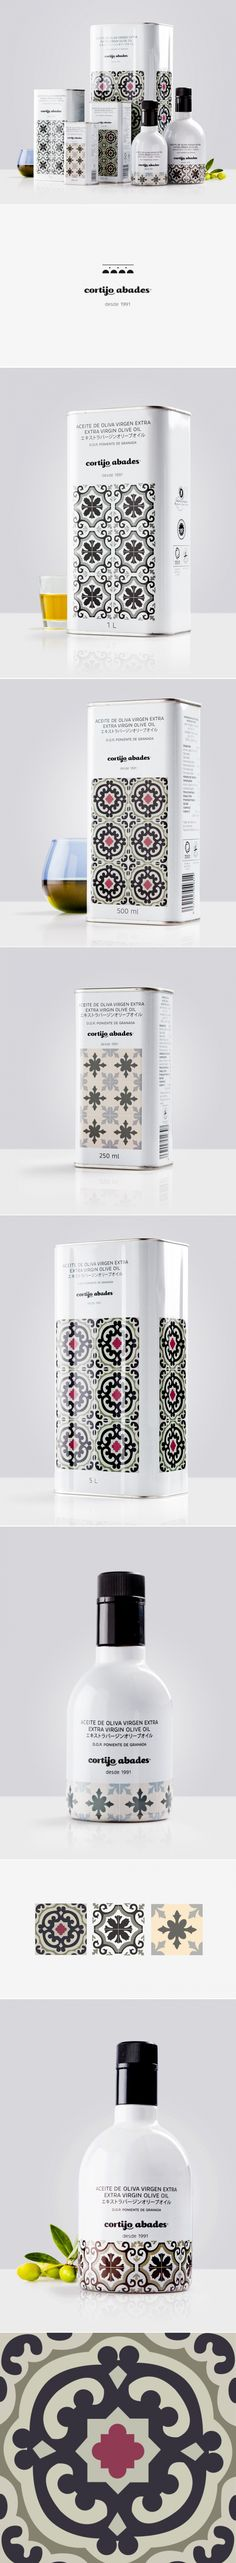 This Olive Oil Is a Beautiful Work of Art For Your Kitchen — The Dieline | Packaging & Branding Design & Innovation News